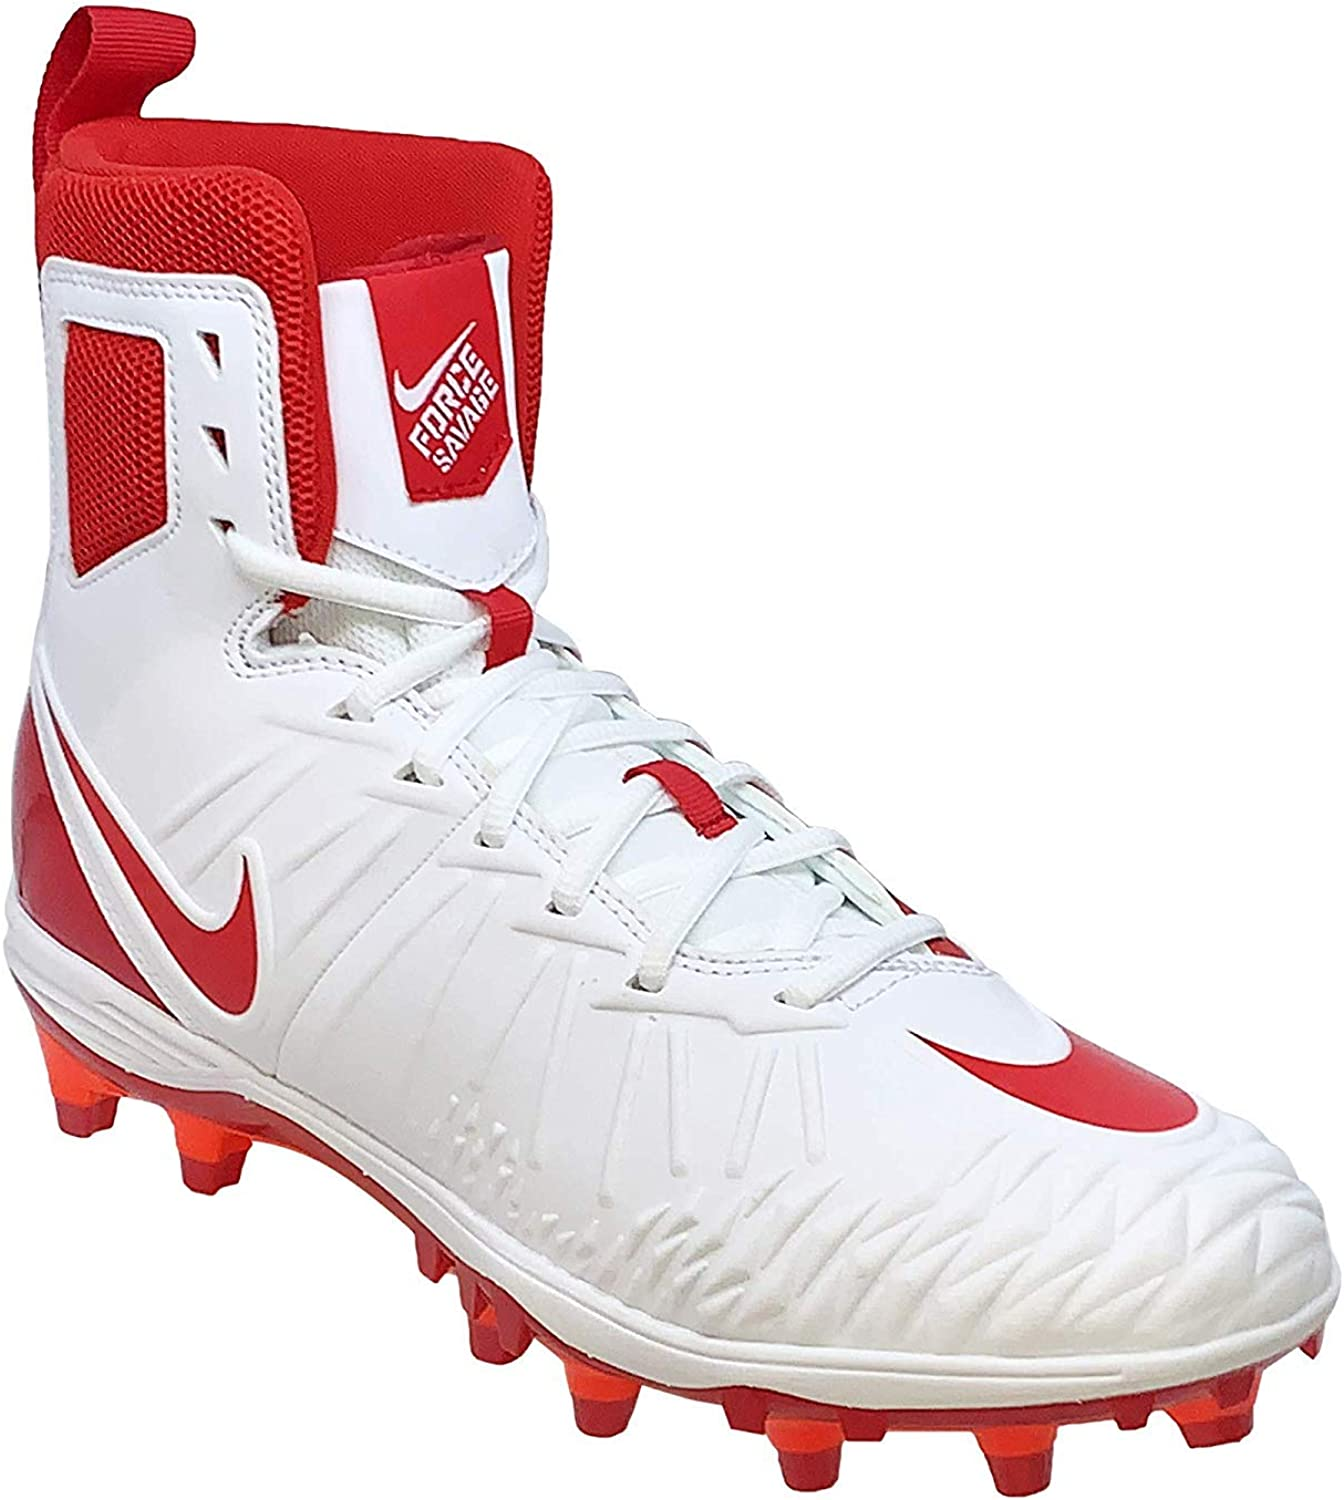 Force Savage High Top Football Cleats